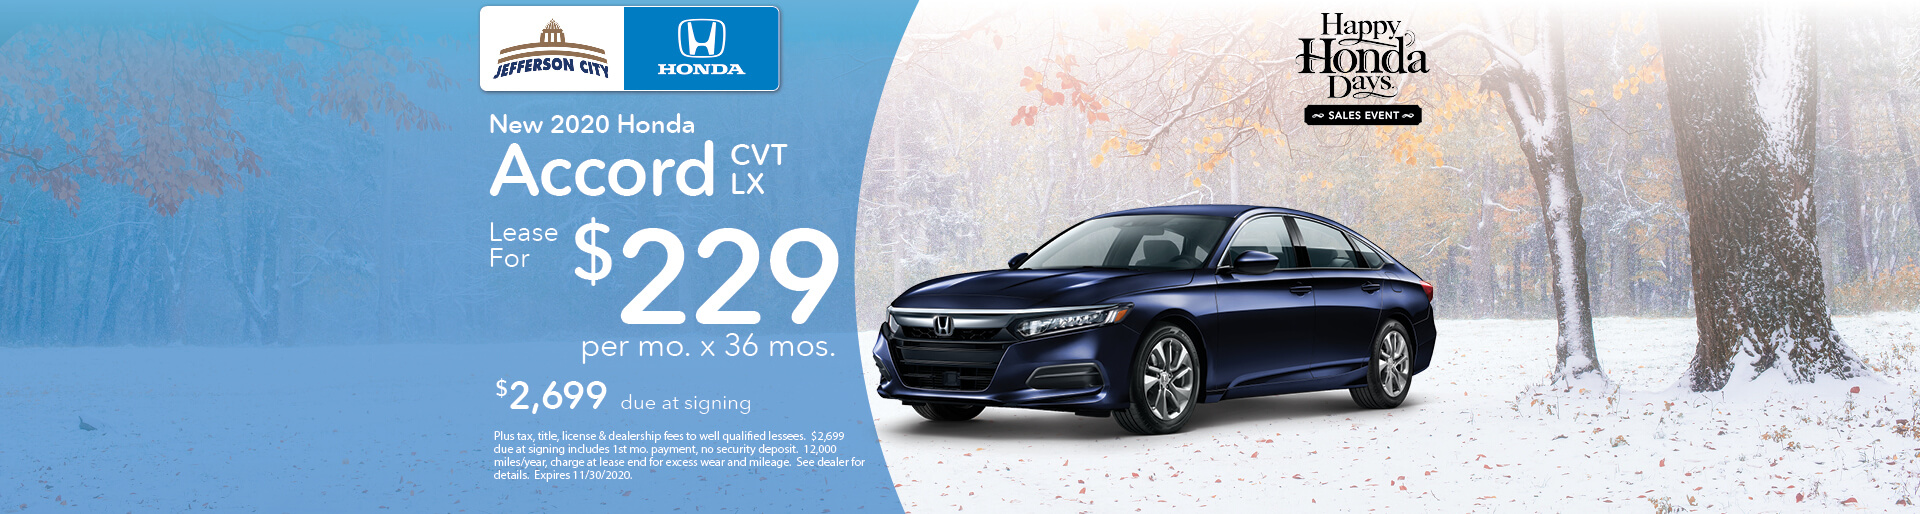 2020 Accord LX | Lease for $229/mo x 36 Mos. | Jefferson City, MO